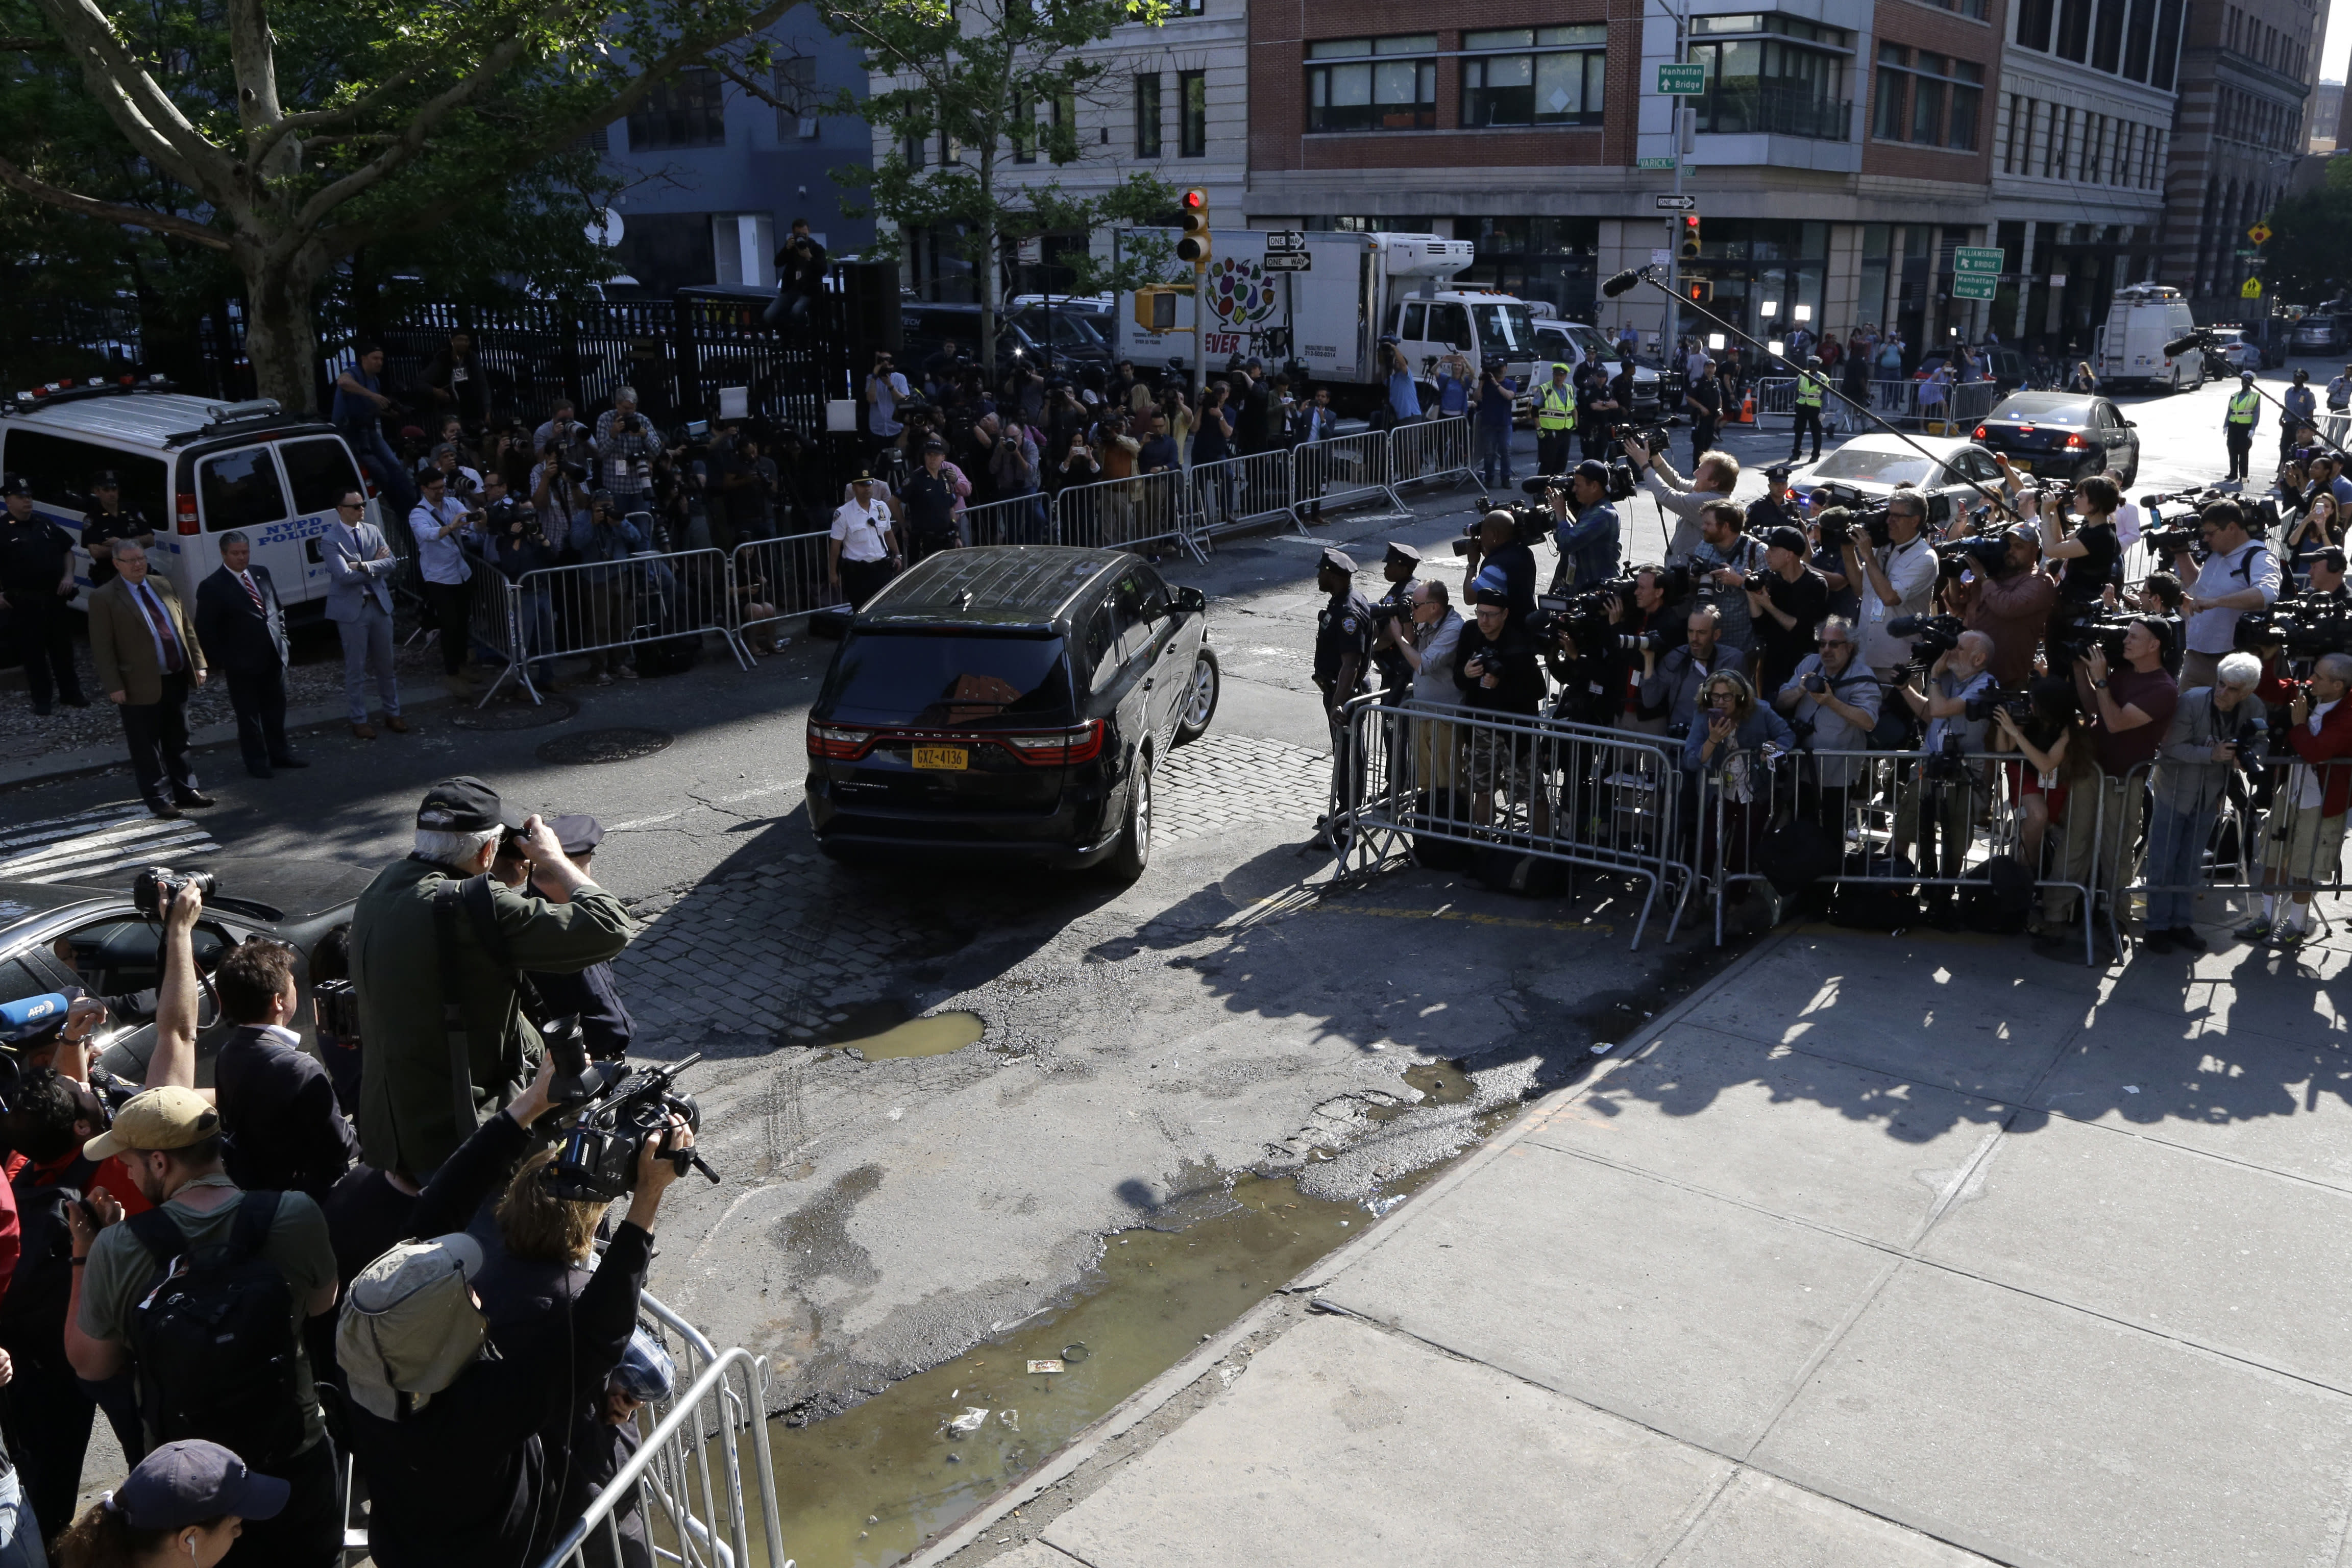 <p>An unmarked vehicle carrying Harvey Weinstein leaves the first precinct of the New York City Police Department after turning himself in to authorities following allegations of sexual misconduct, Friday, May 25, 2018, in New York. (Photo: Julio Cortez/AP) </p>